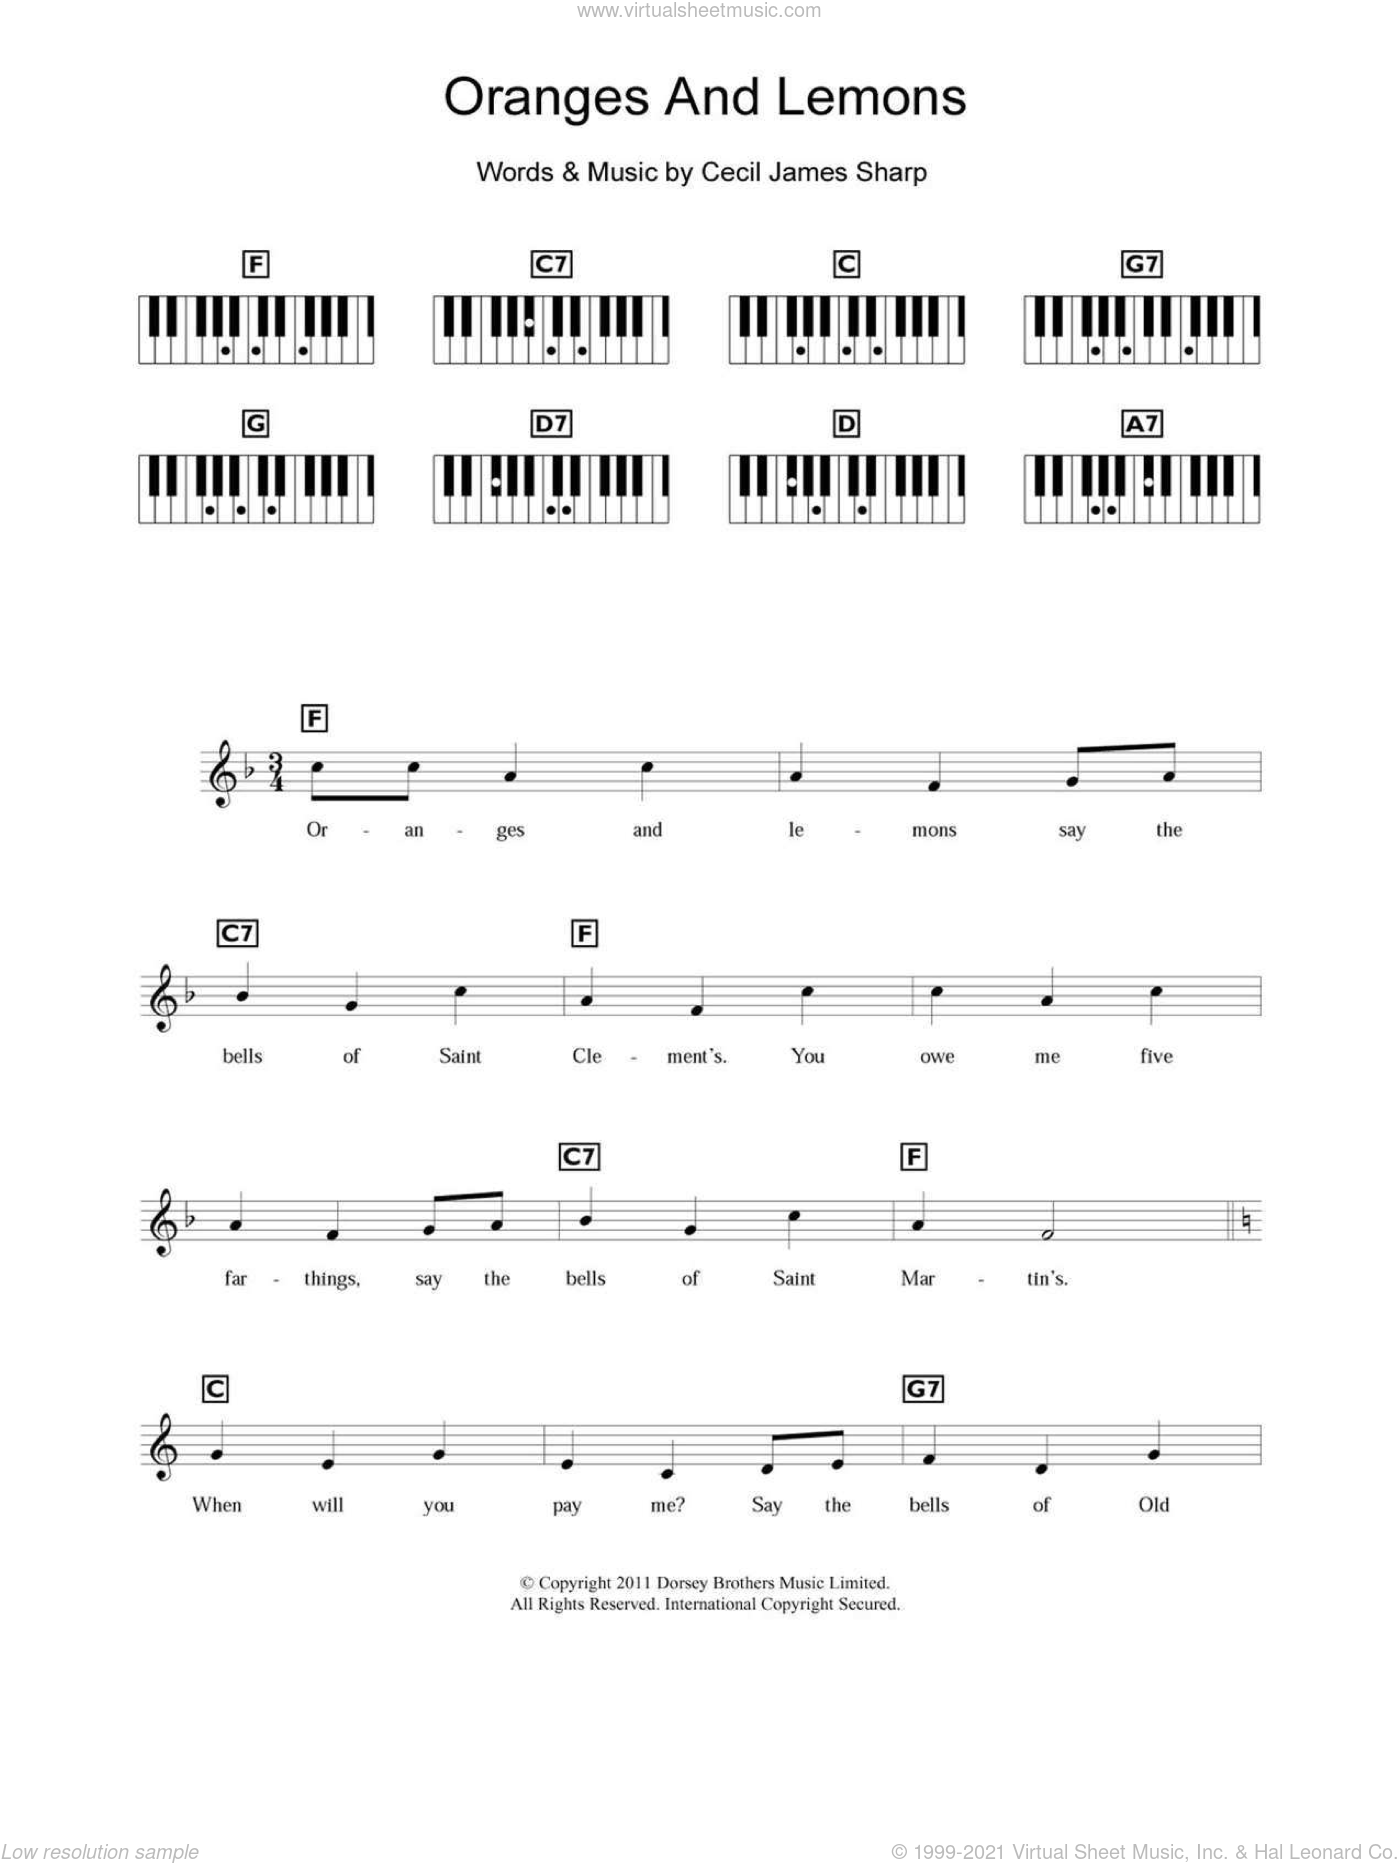 Oranges And Lemons sheet music for piano solo (chords, lyrics, melody) by Cecil James Sharp